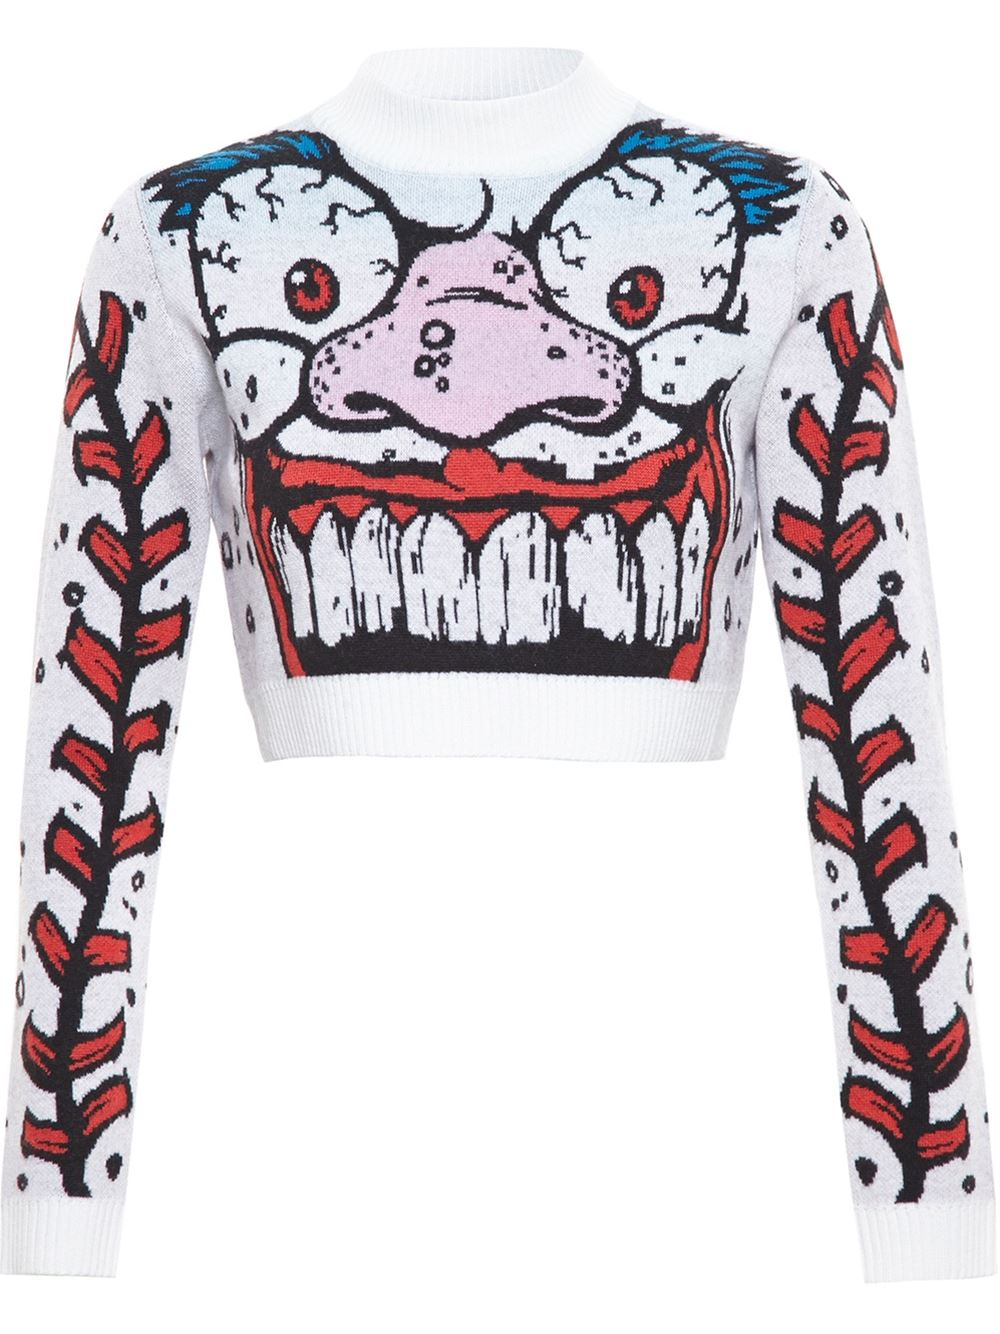 Jeremy Scott Cropped Monster Knit - Browns - Farfetch.com